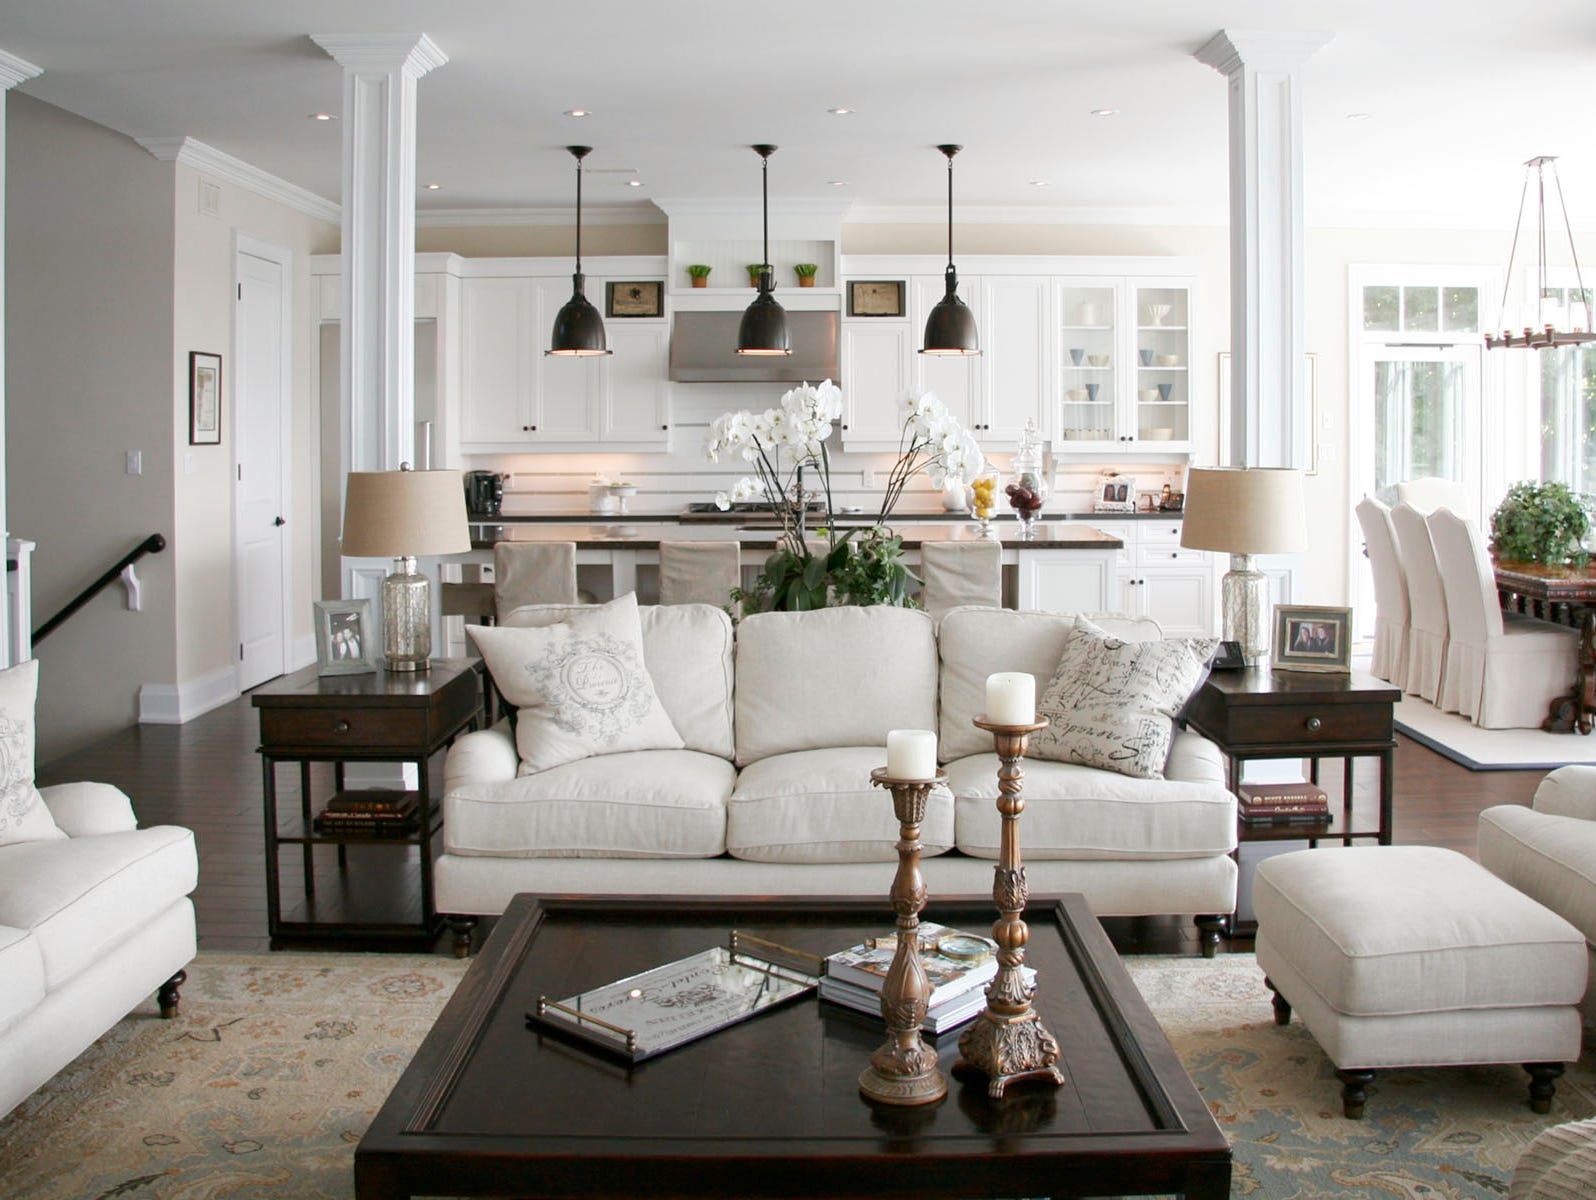 Get inspired. Shop for your home on Houzz.com.